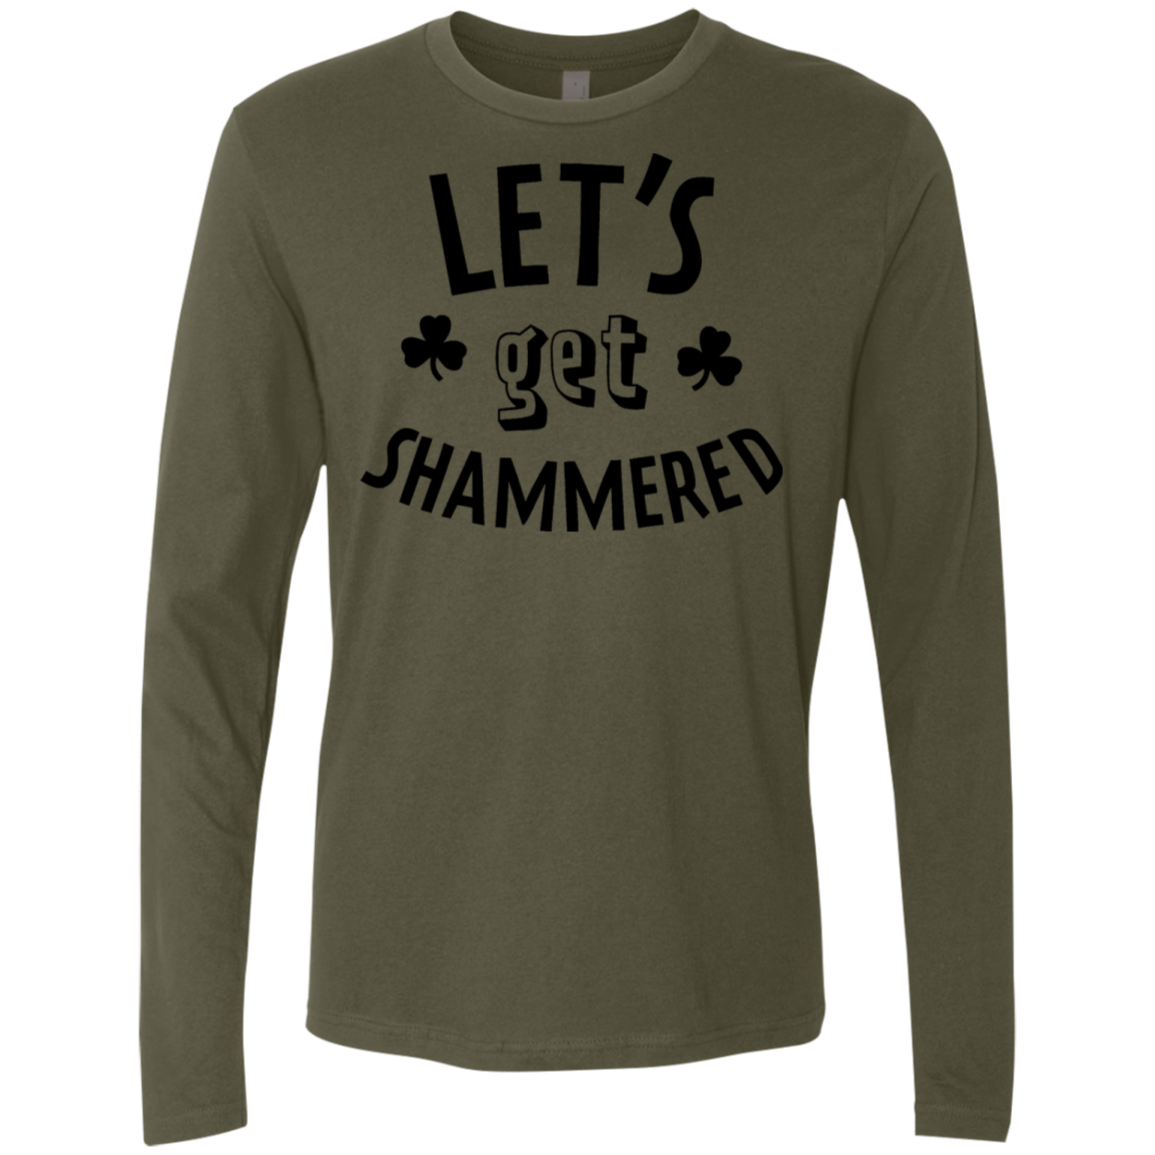 Let's Get Shammered Men's Long Sleeve Tee